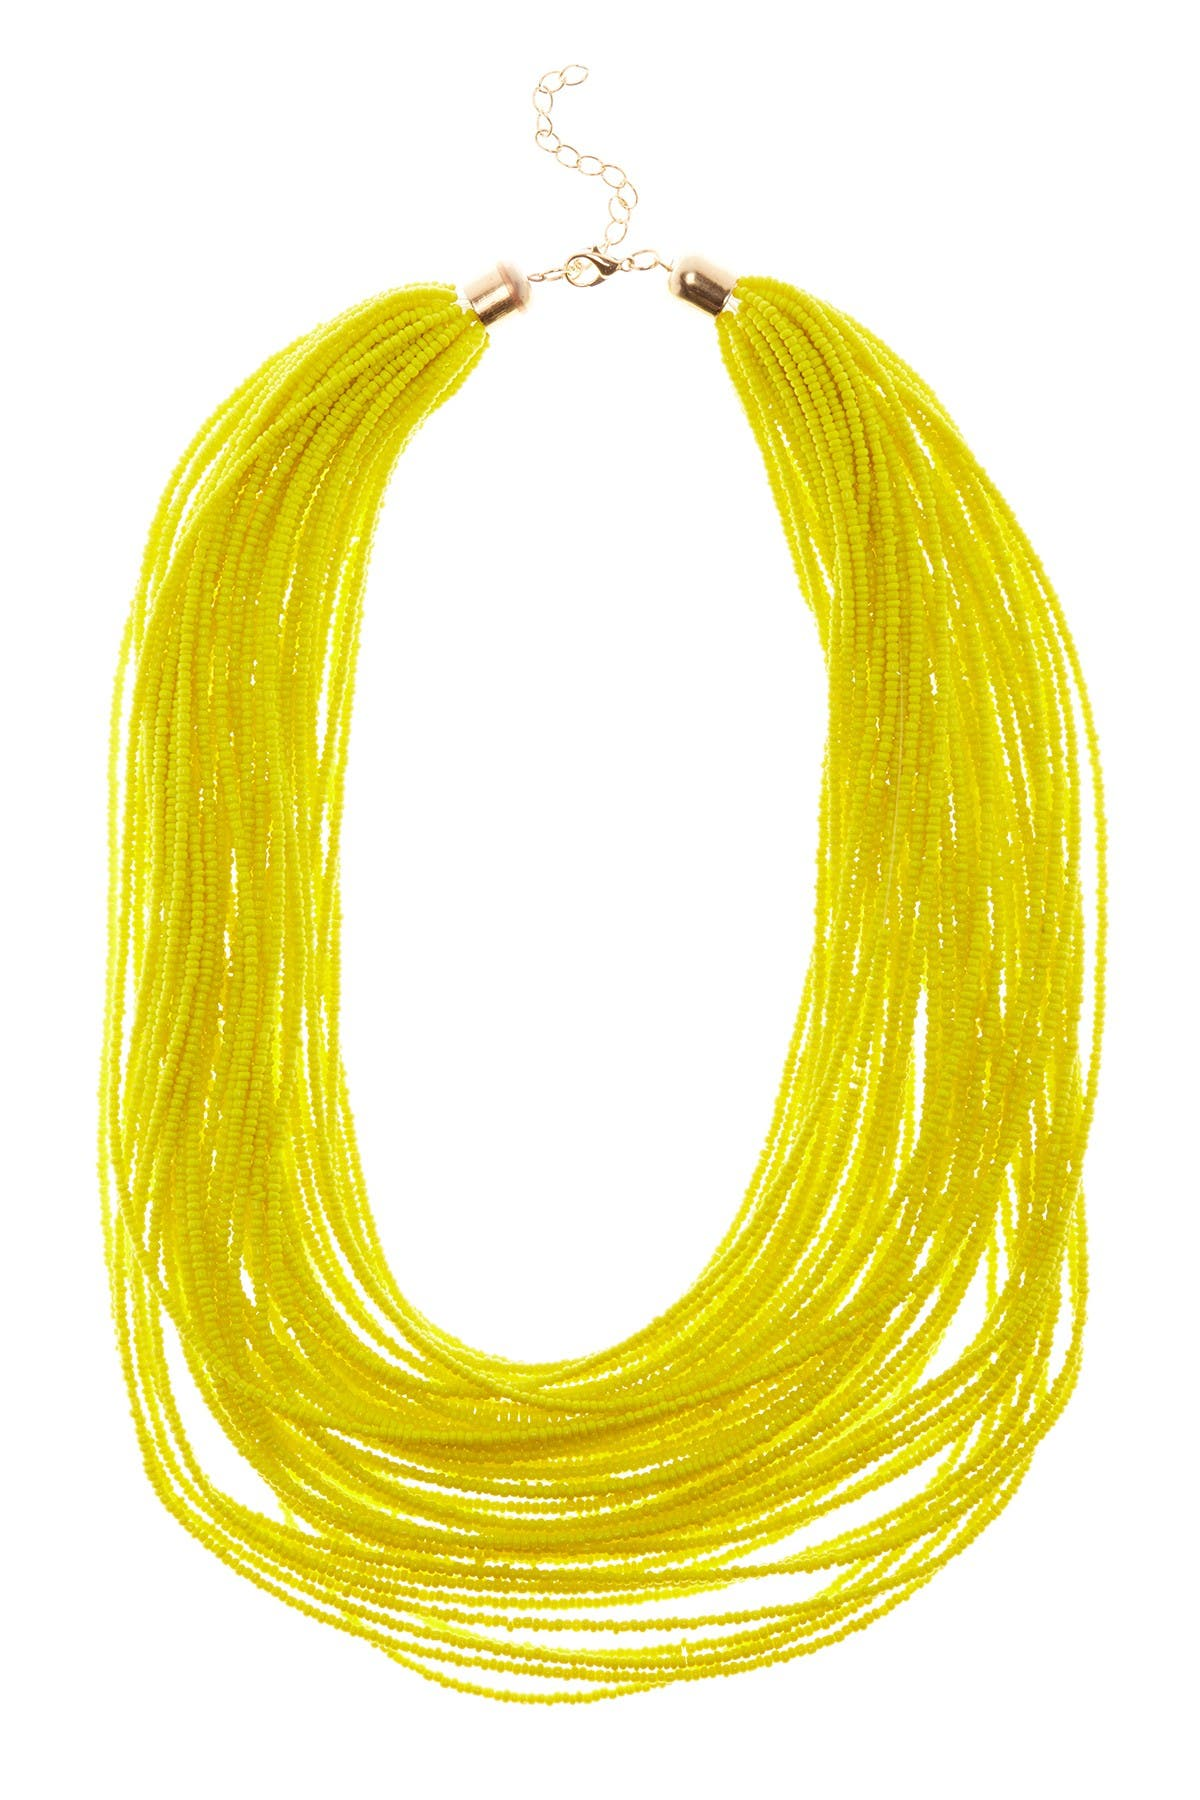 Image of Eye Candy Los Angeles Beaded Multilayered Necklace